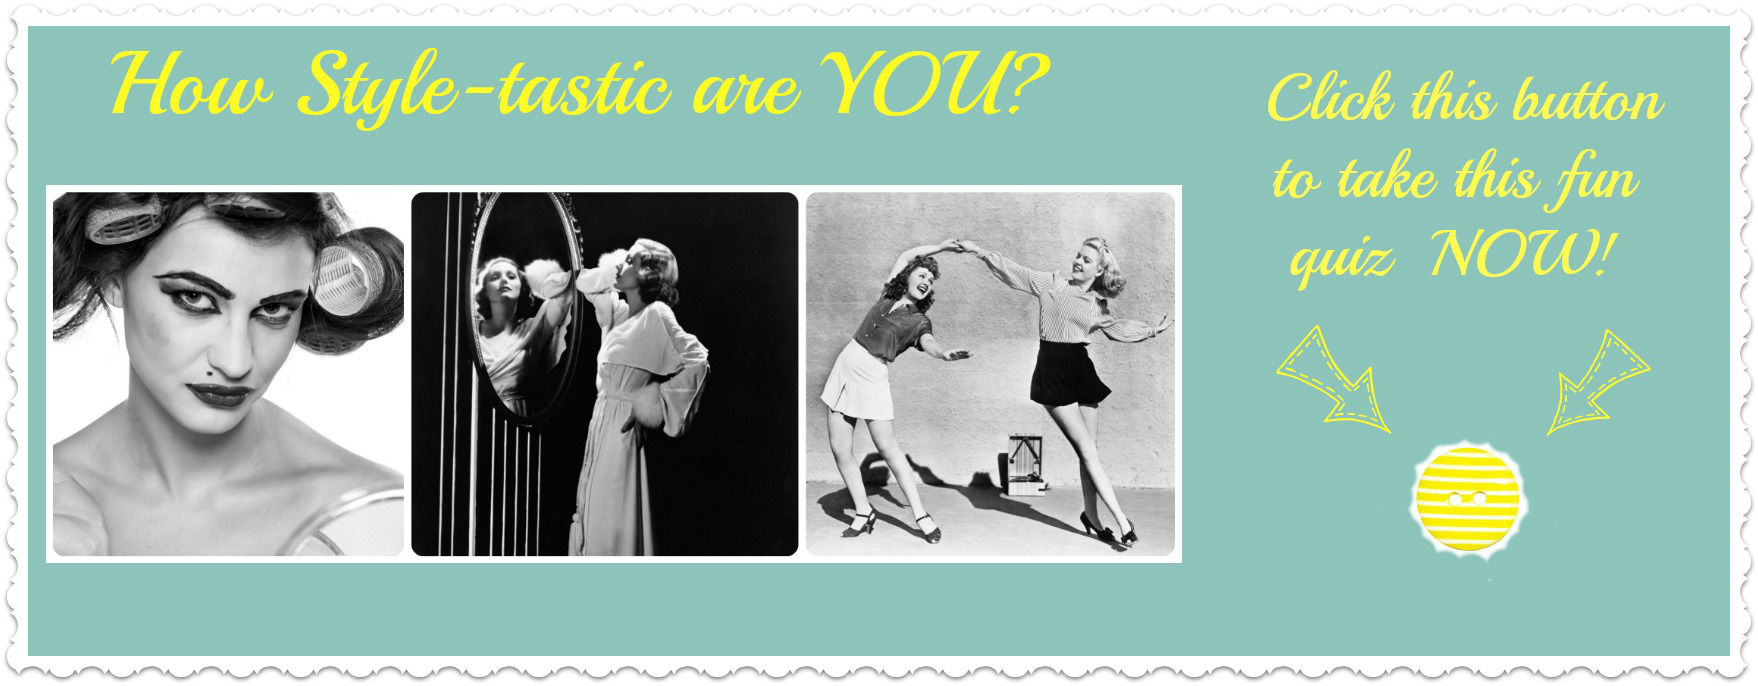 Take this fun quiz to find out how Style-tastic you are - and the areas (if any) you may need a little guidance with